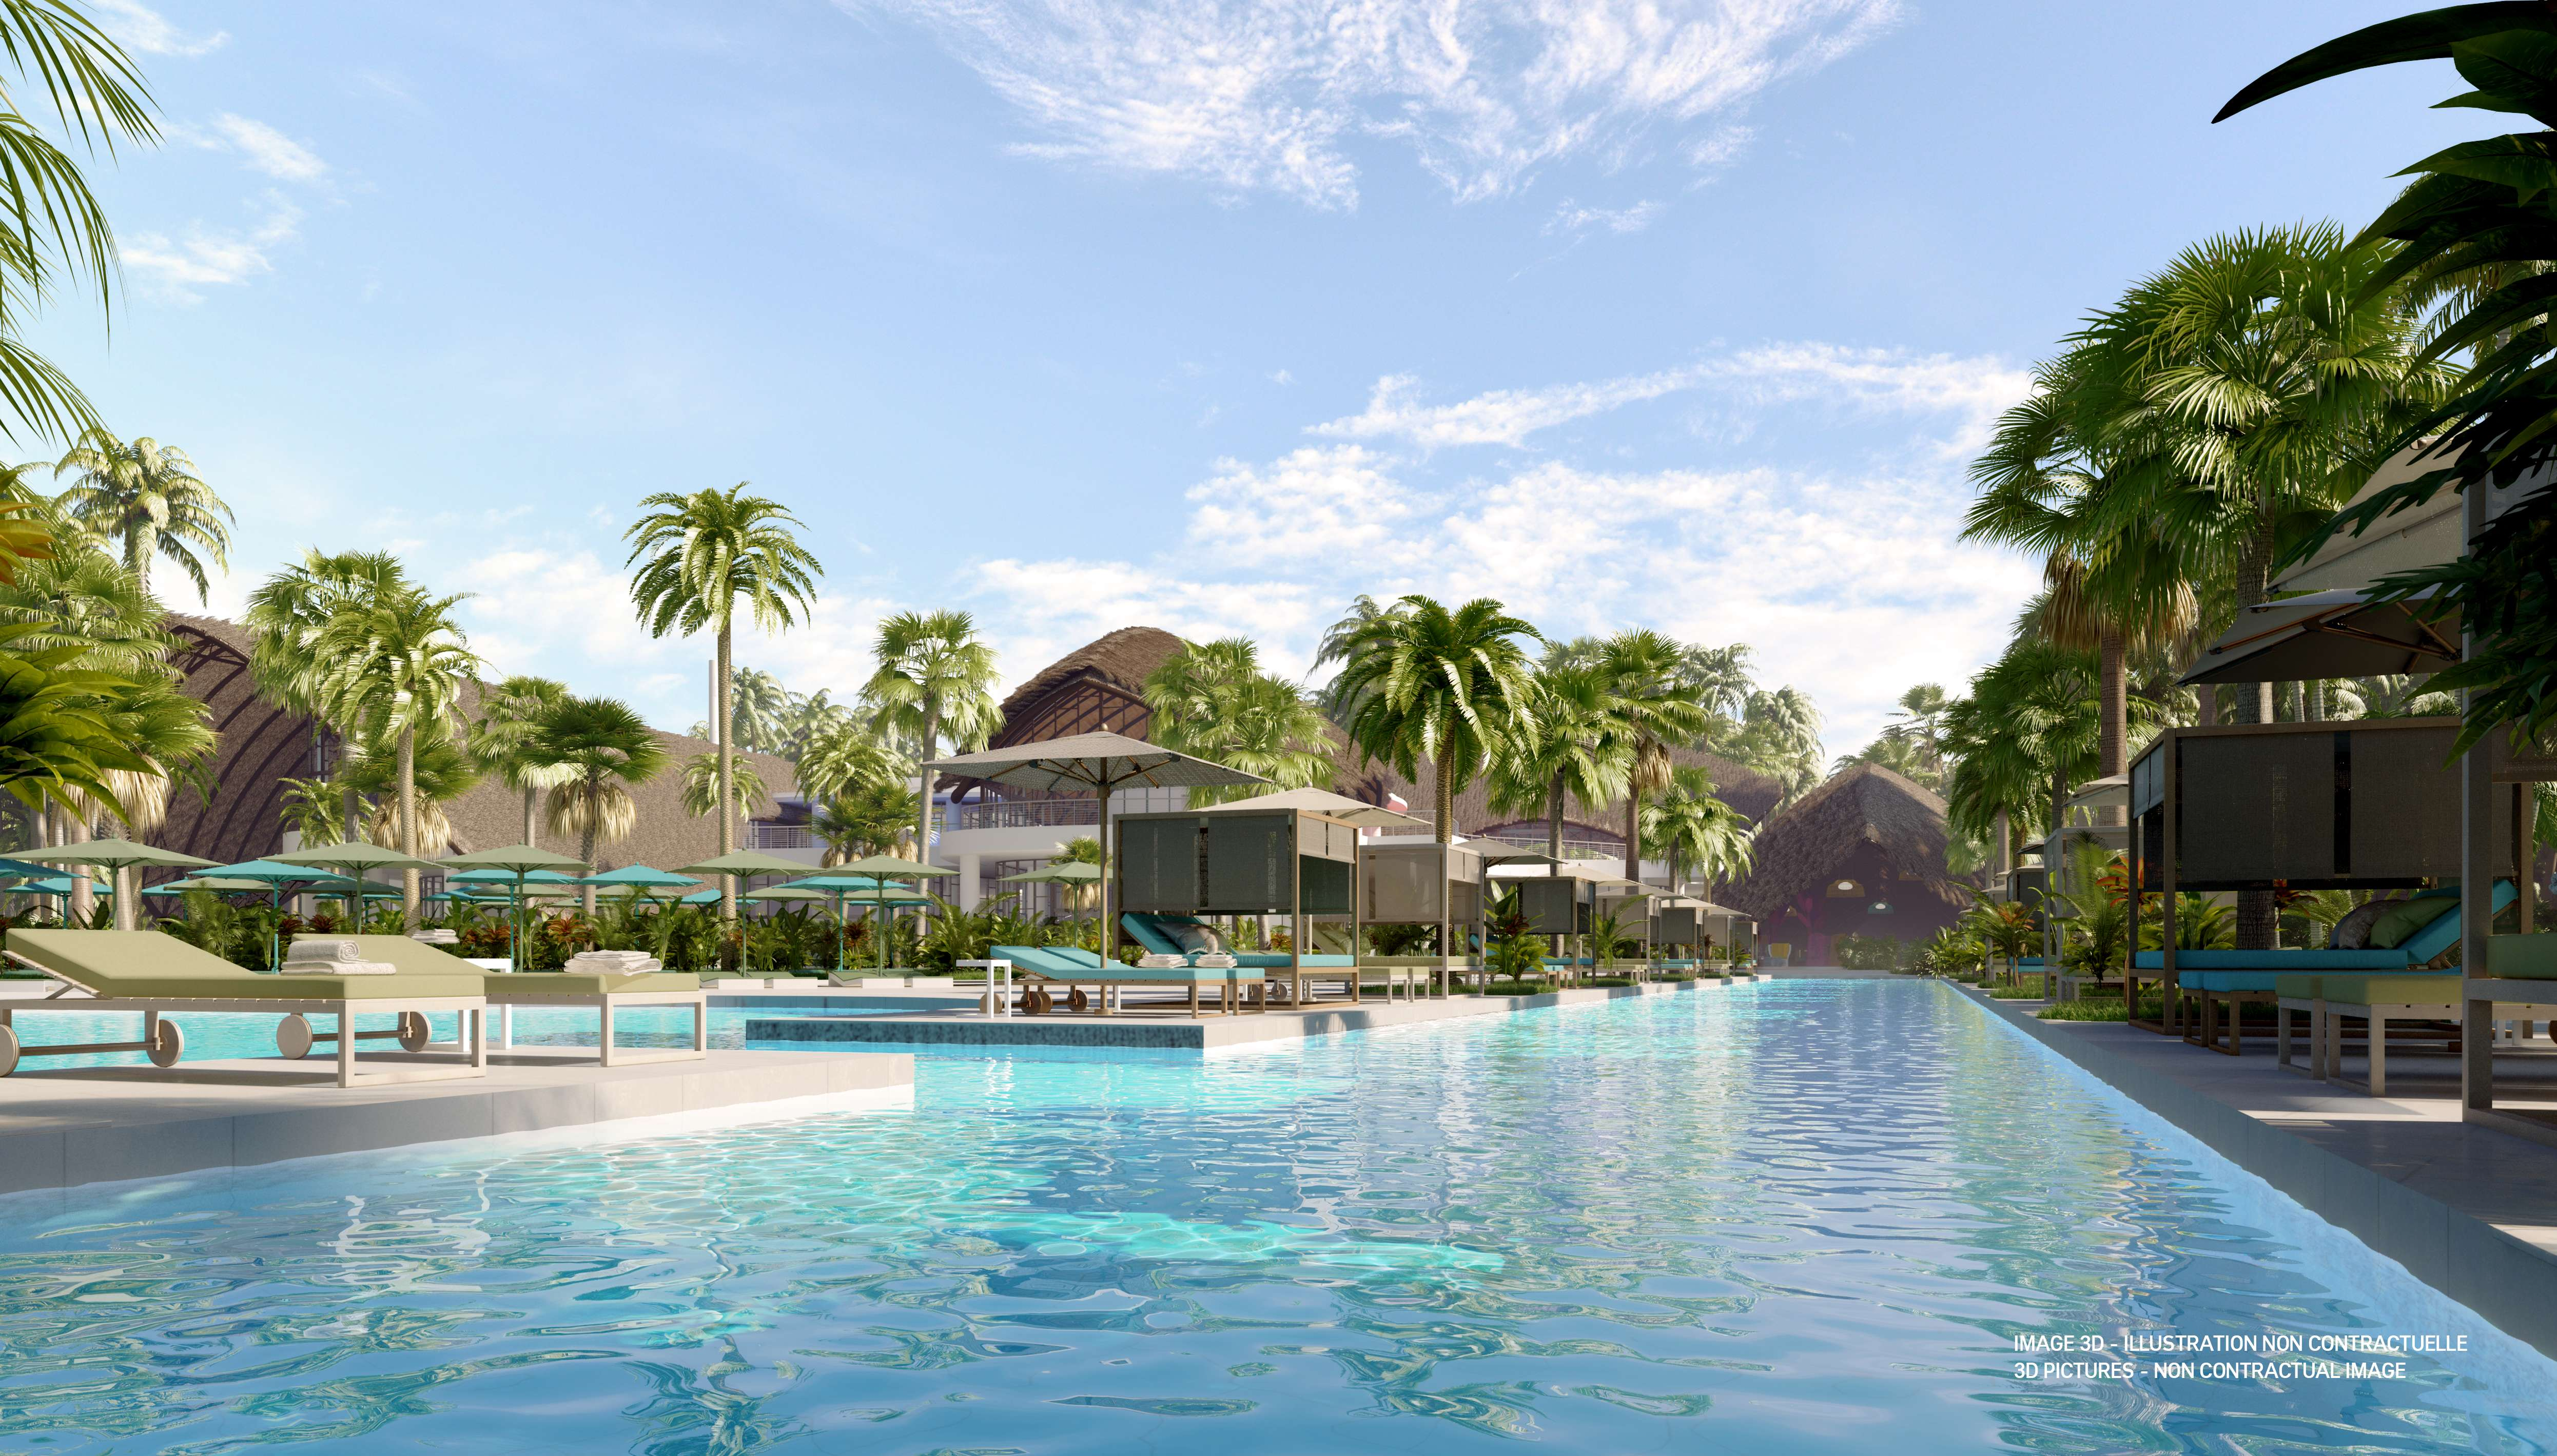 Once open, Club Med Michès Playa Esmeralda will have 335 guestrooms.